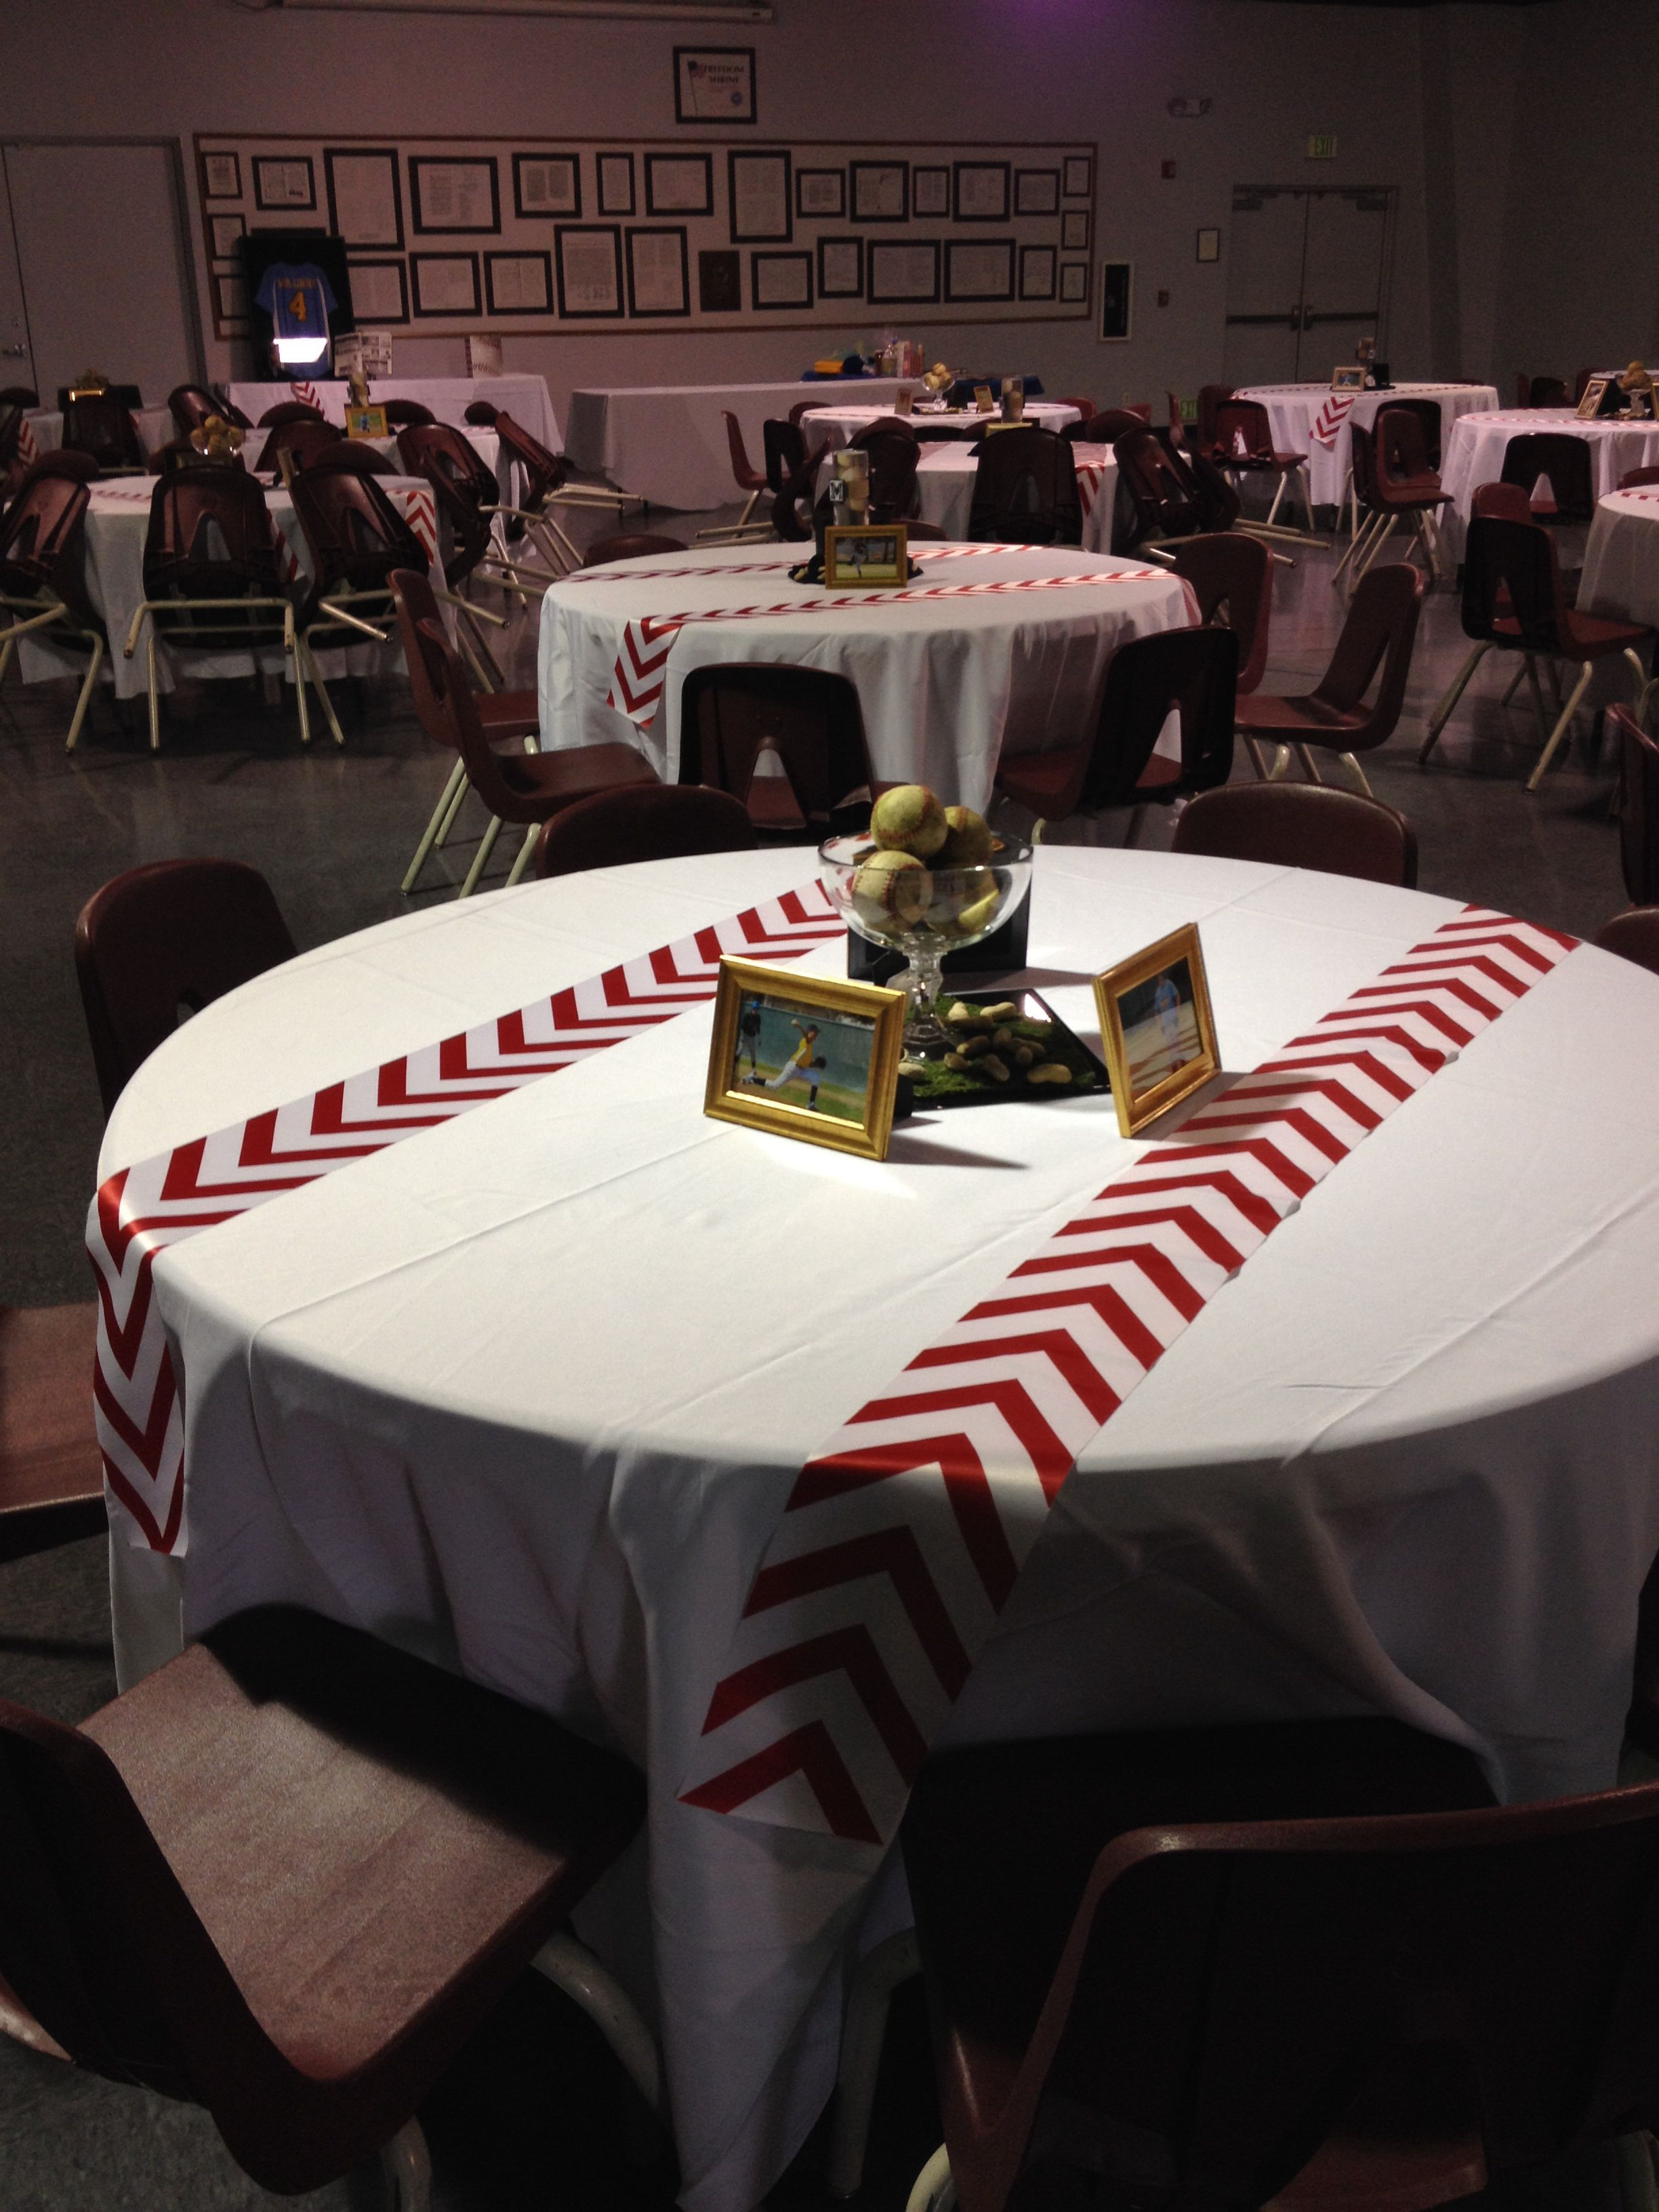 Baseball event or birthday party with a baseball table and